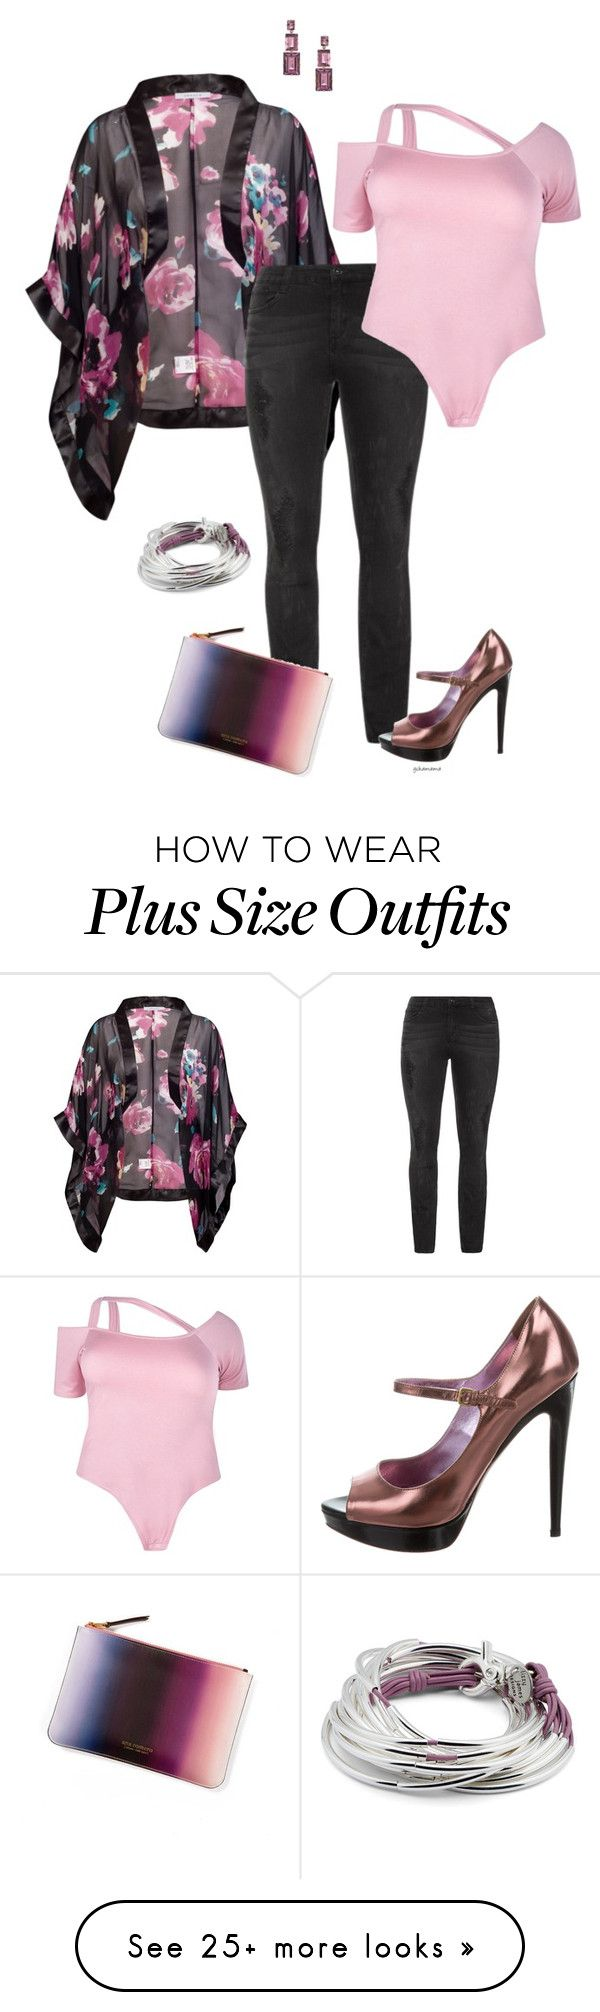 best outfits images on pinterest plus size fashion curves and